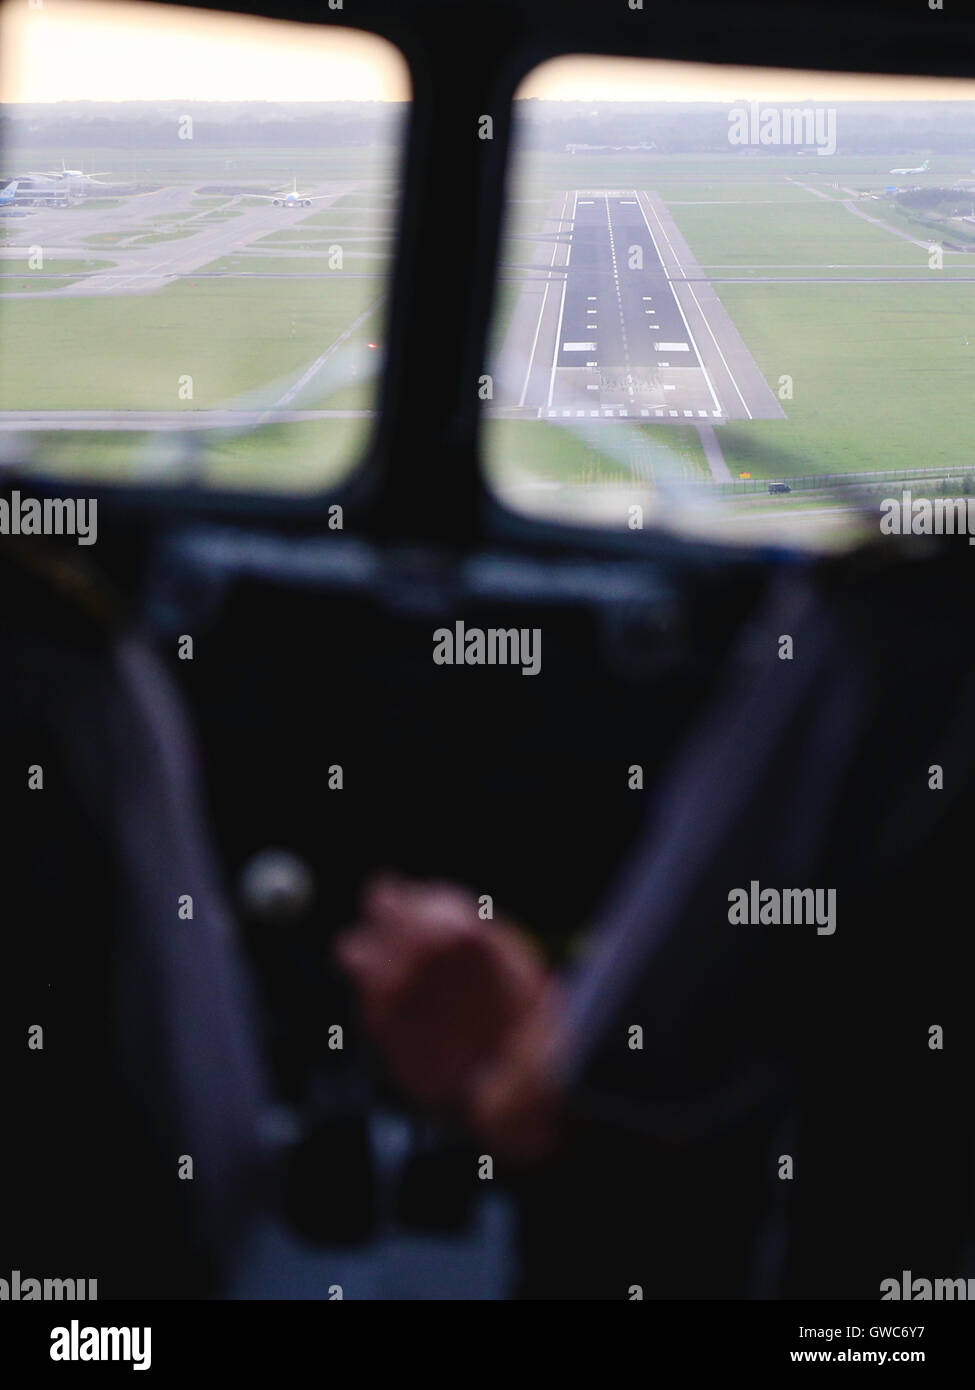 DDA Classic Flights approaches runway 27 at Amsterdam Schipol airport. - Stock Image